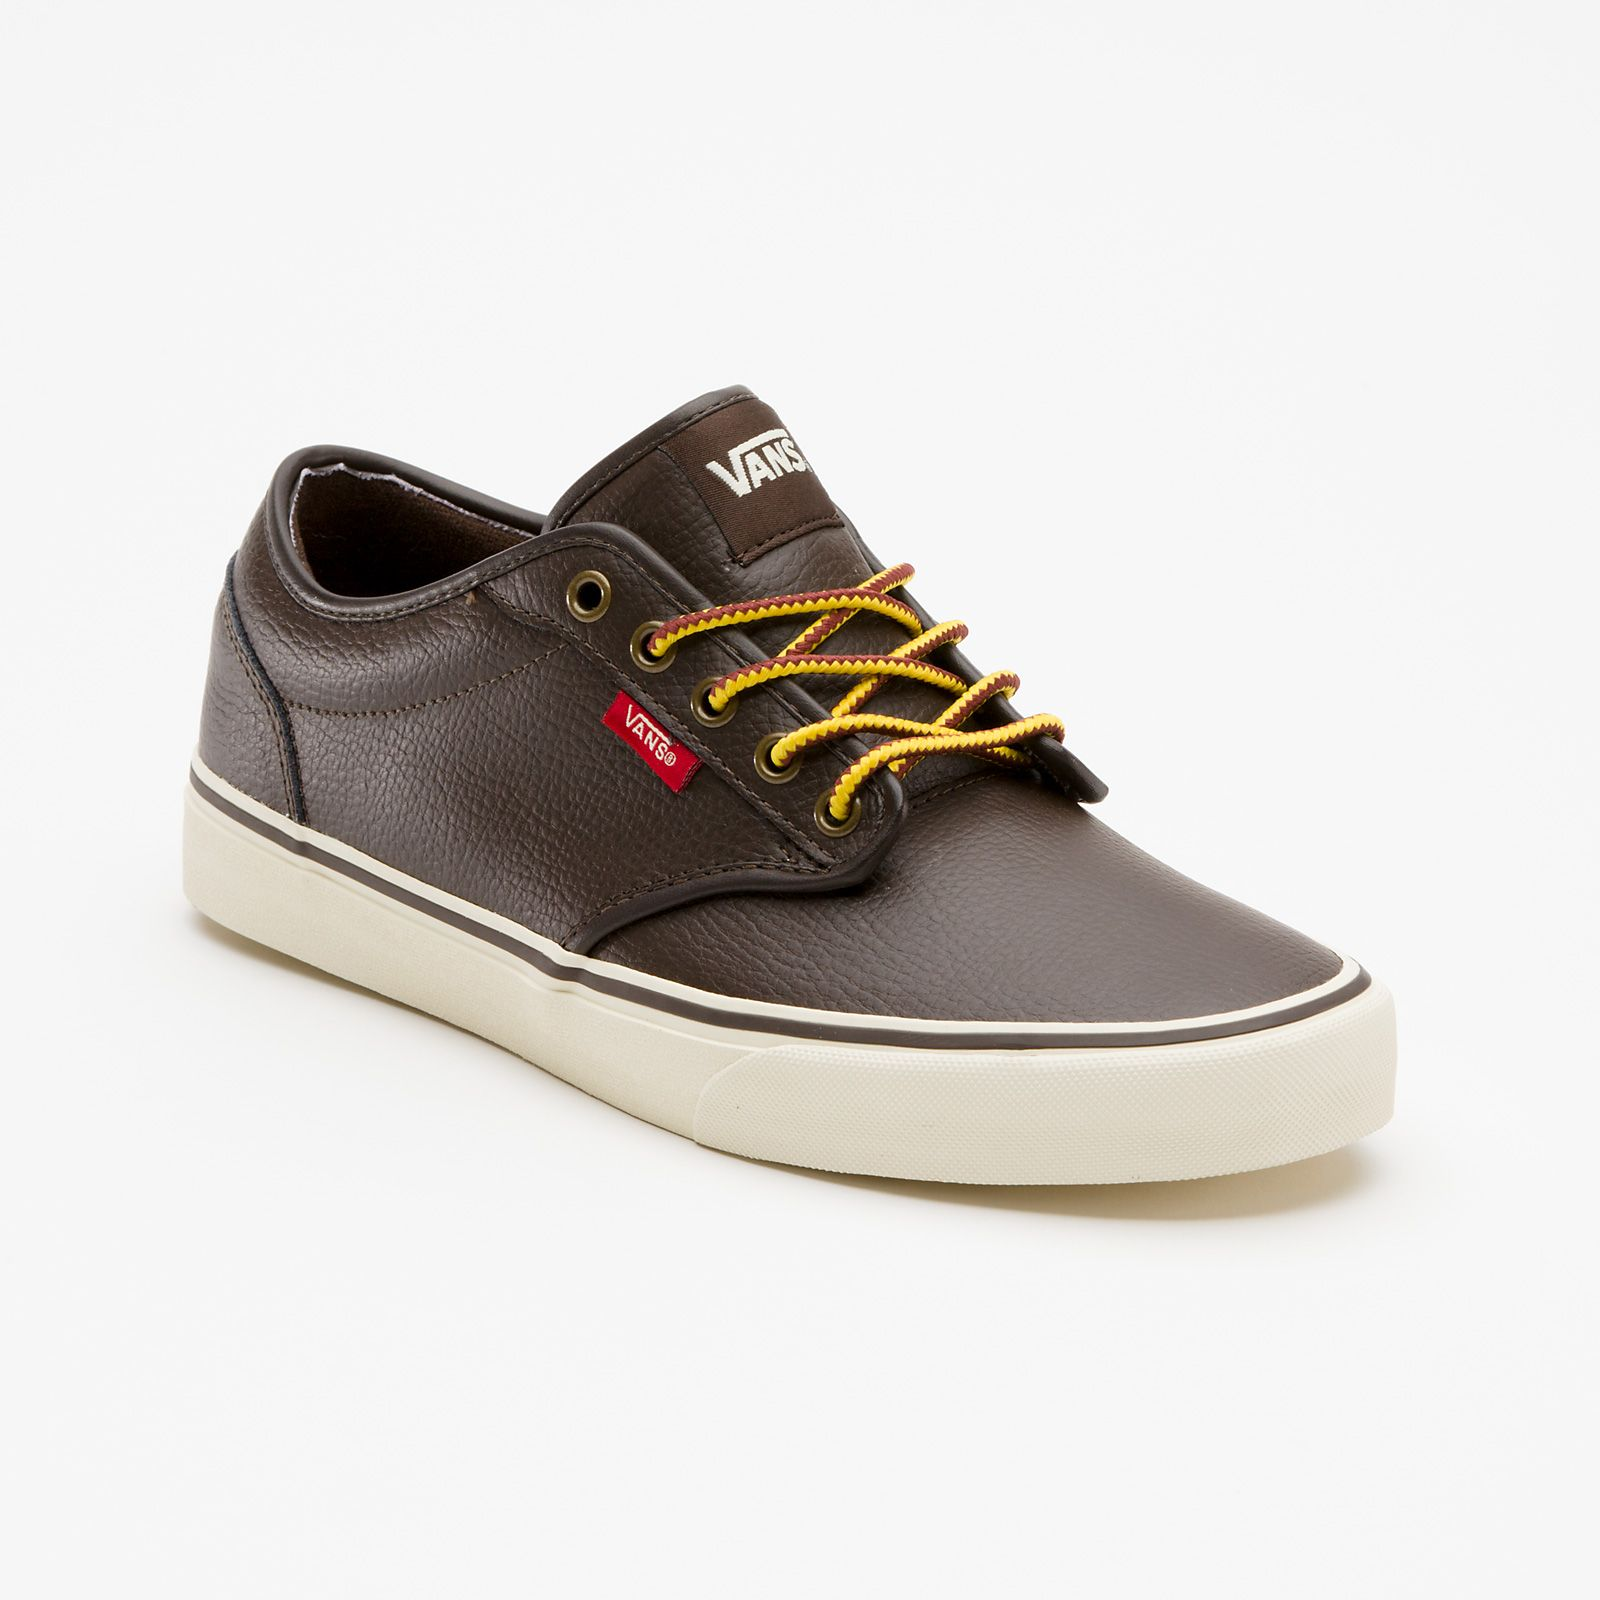 vans leather atwood sneakers